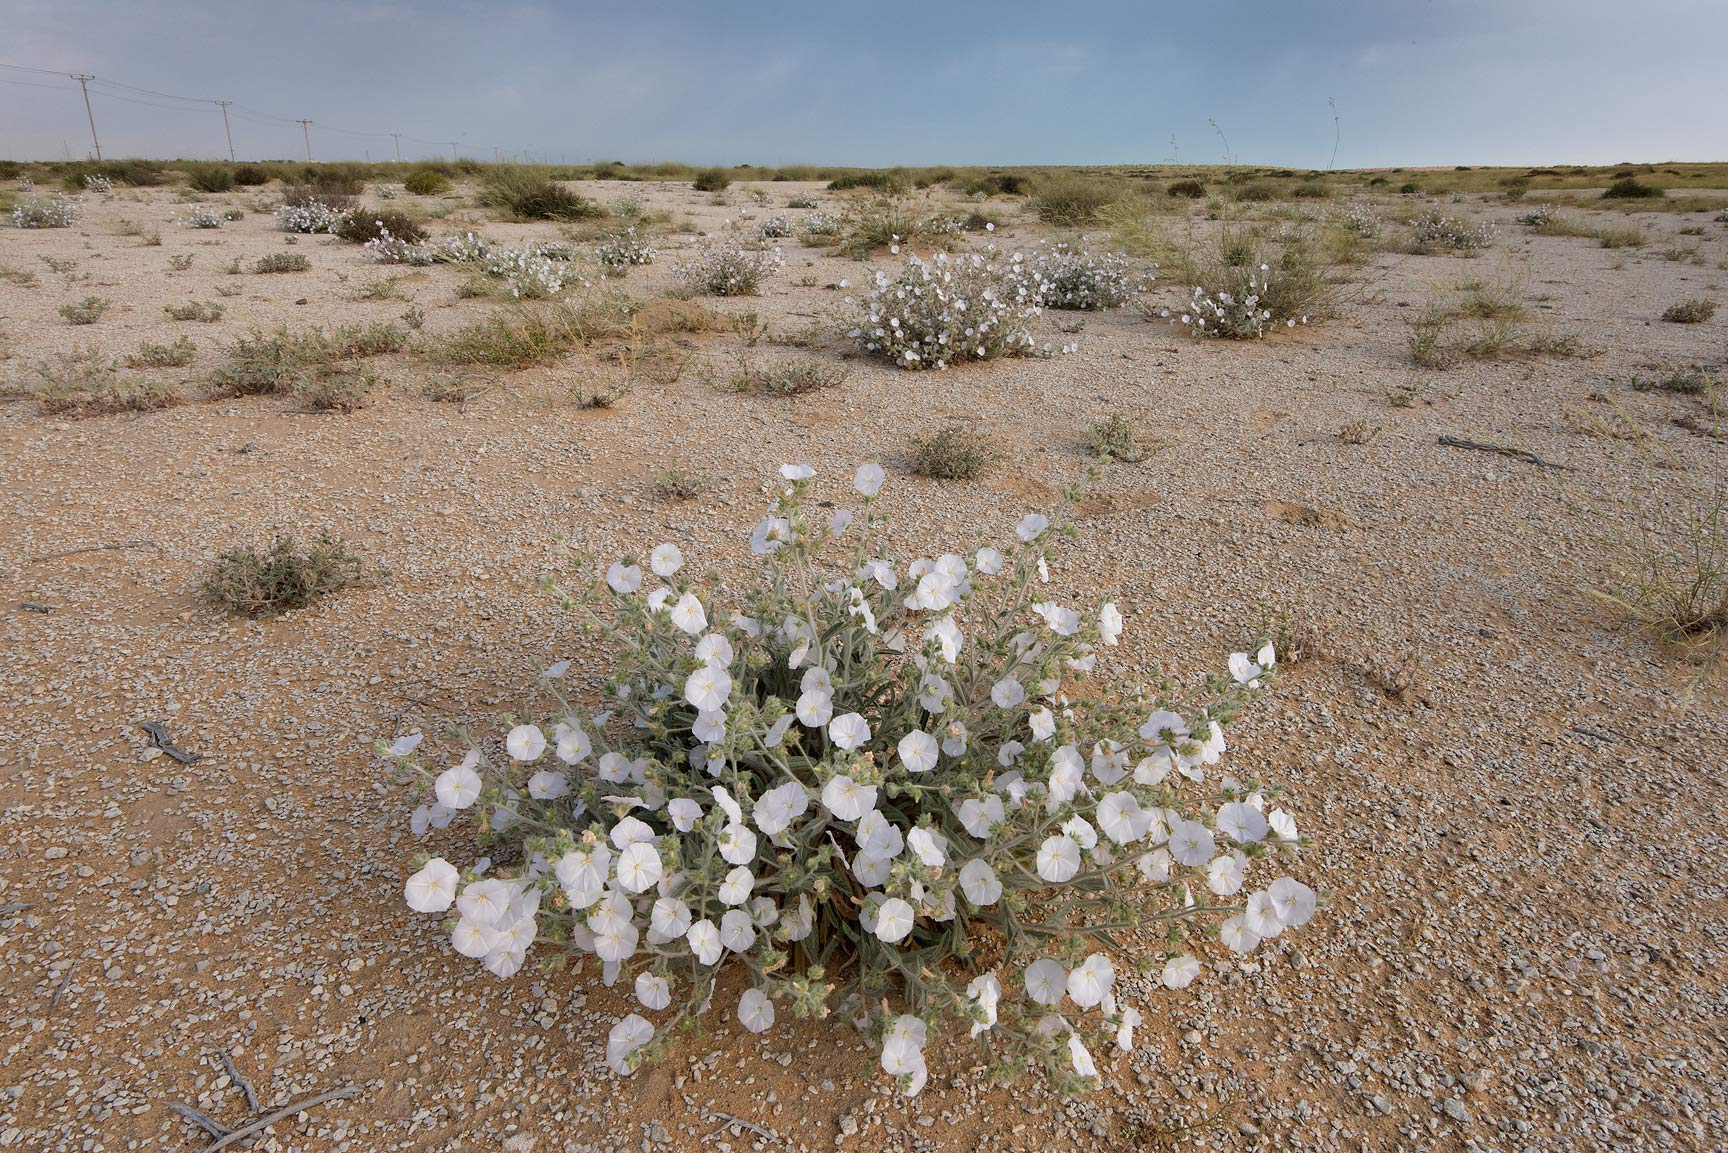 Blooming plant of Morning glory (Convolvulus...Reserve near Abu Samra. Southern Qatar